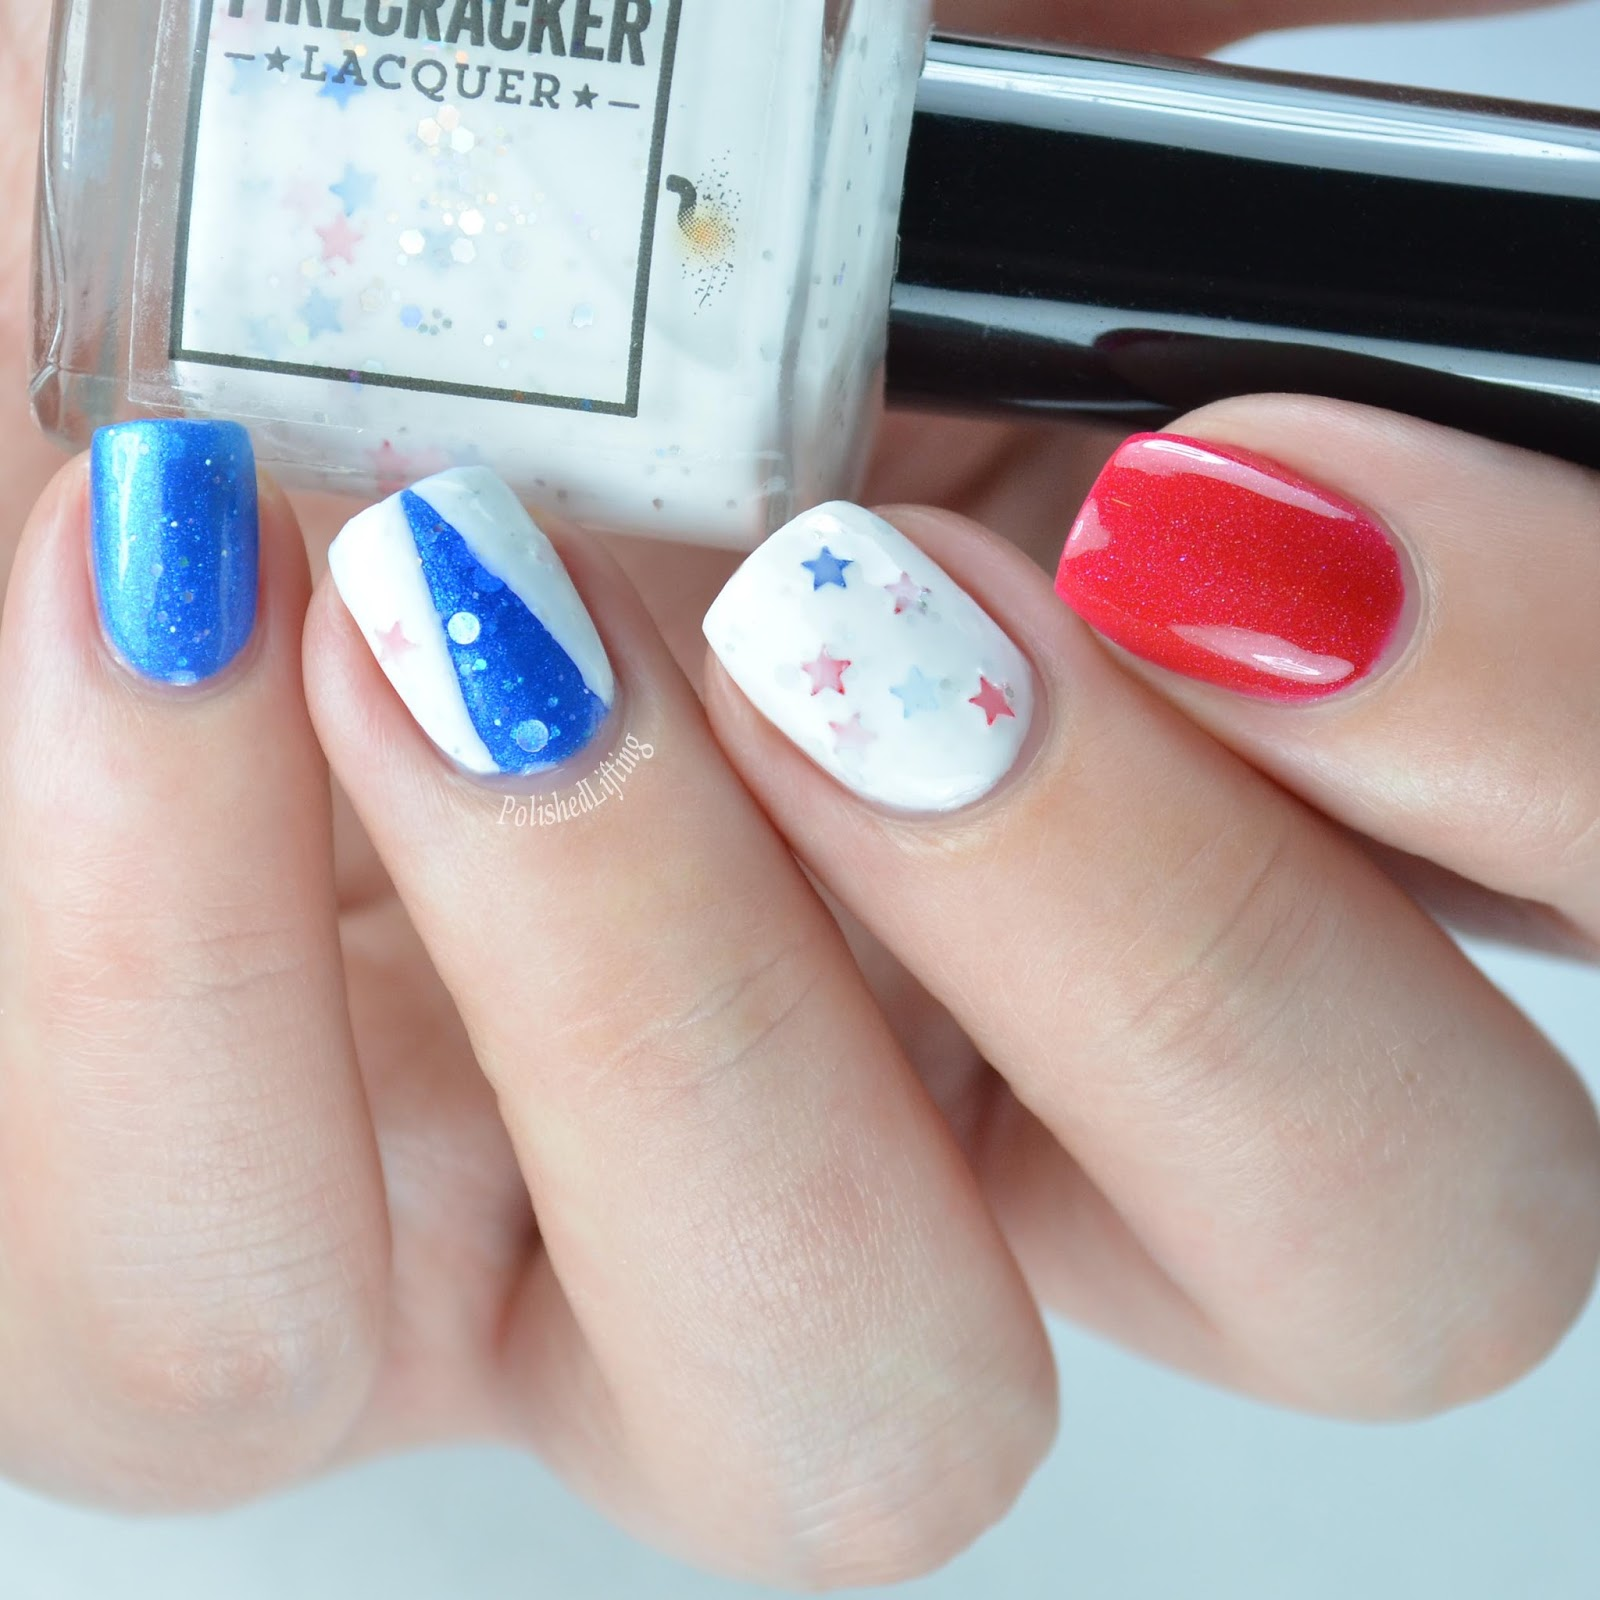 Polished lifting july 2016 4th of july nail art solutioingenieria Choice Image